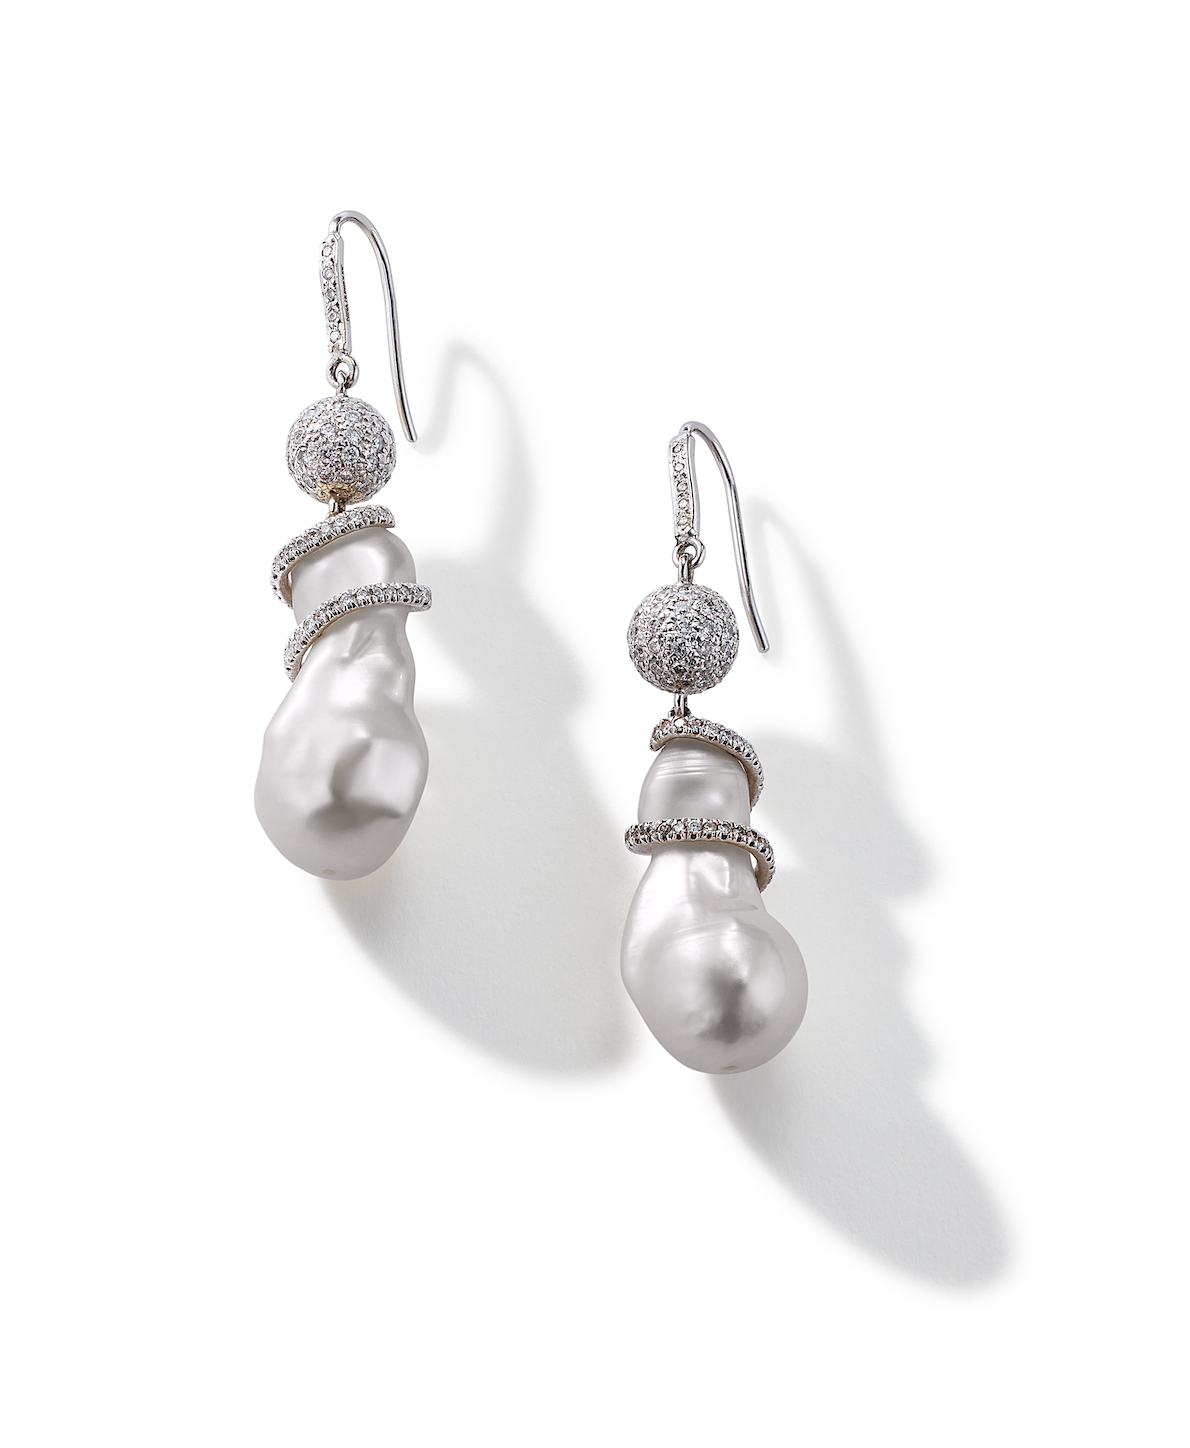 Baroque Pearl and Pavé Diamond Ball Earrings